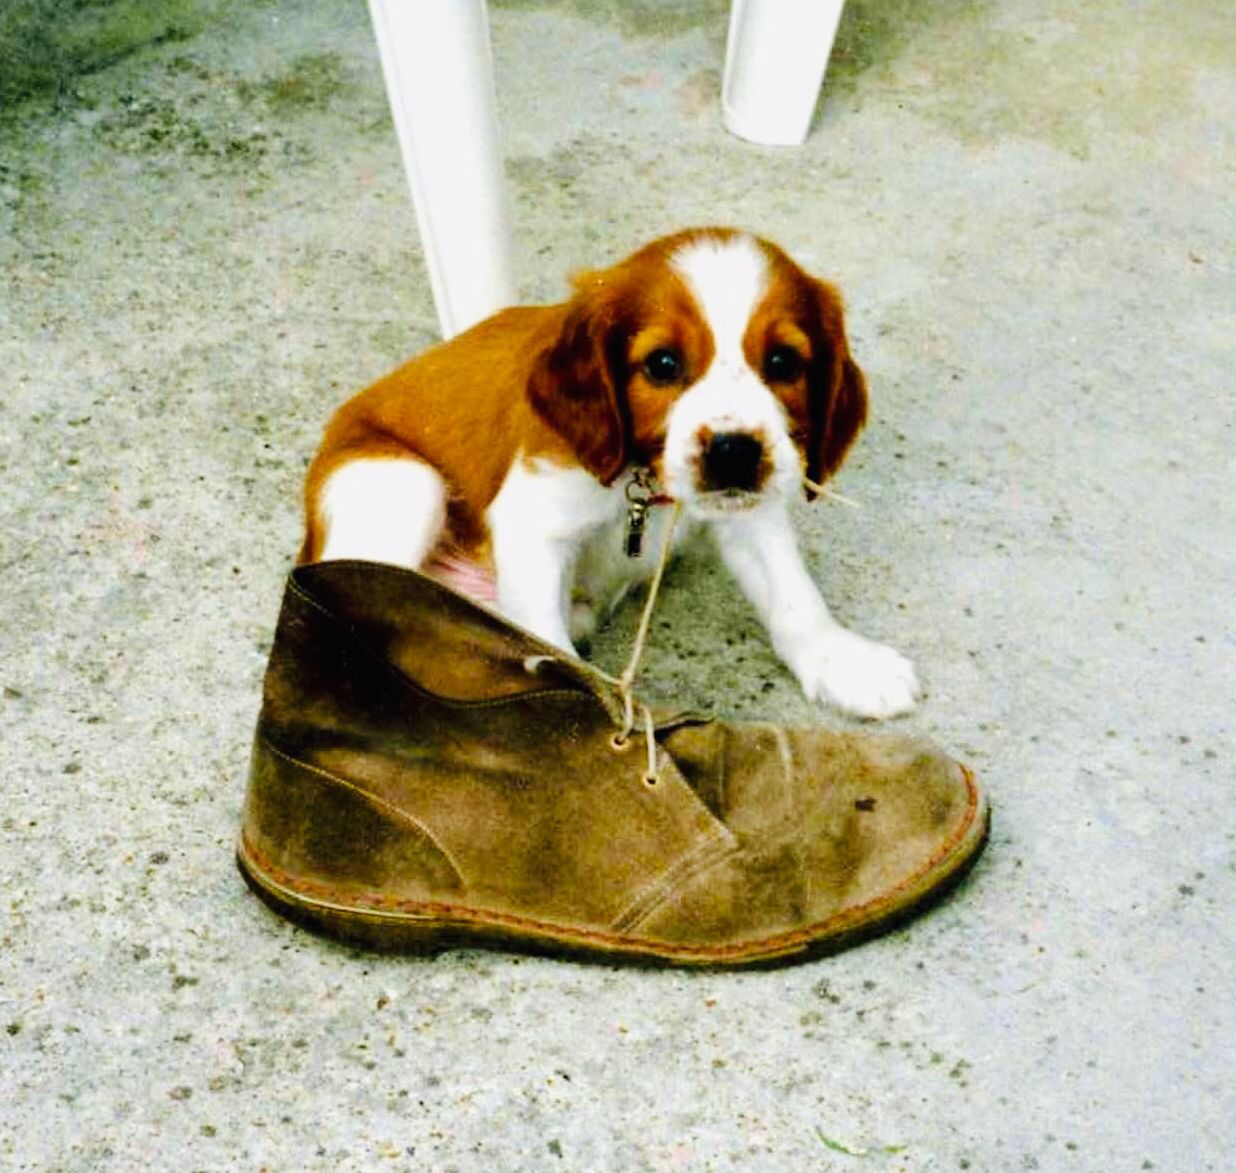 This 12 weeks old puppy chews a boot lace thinking it's a